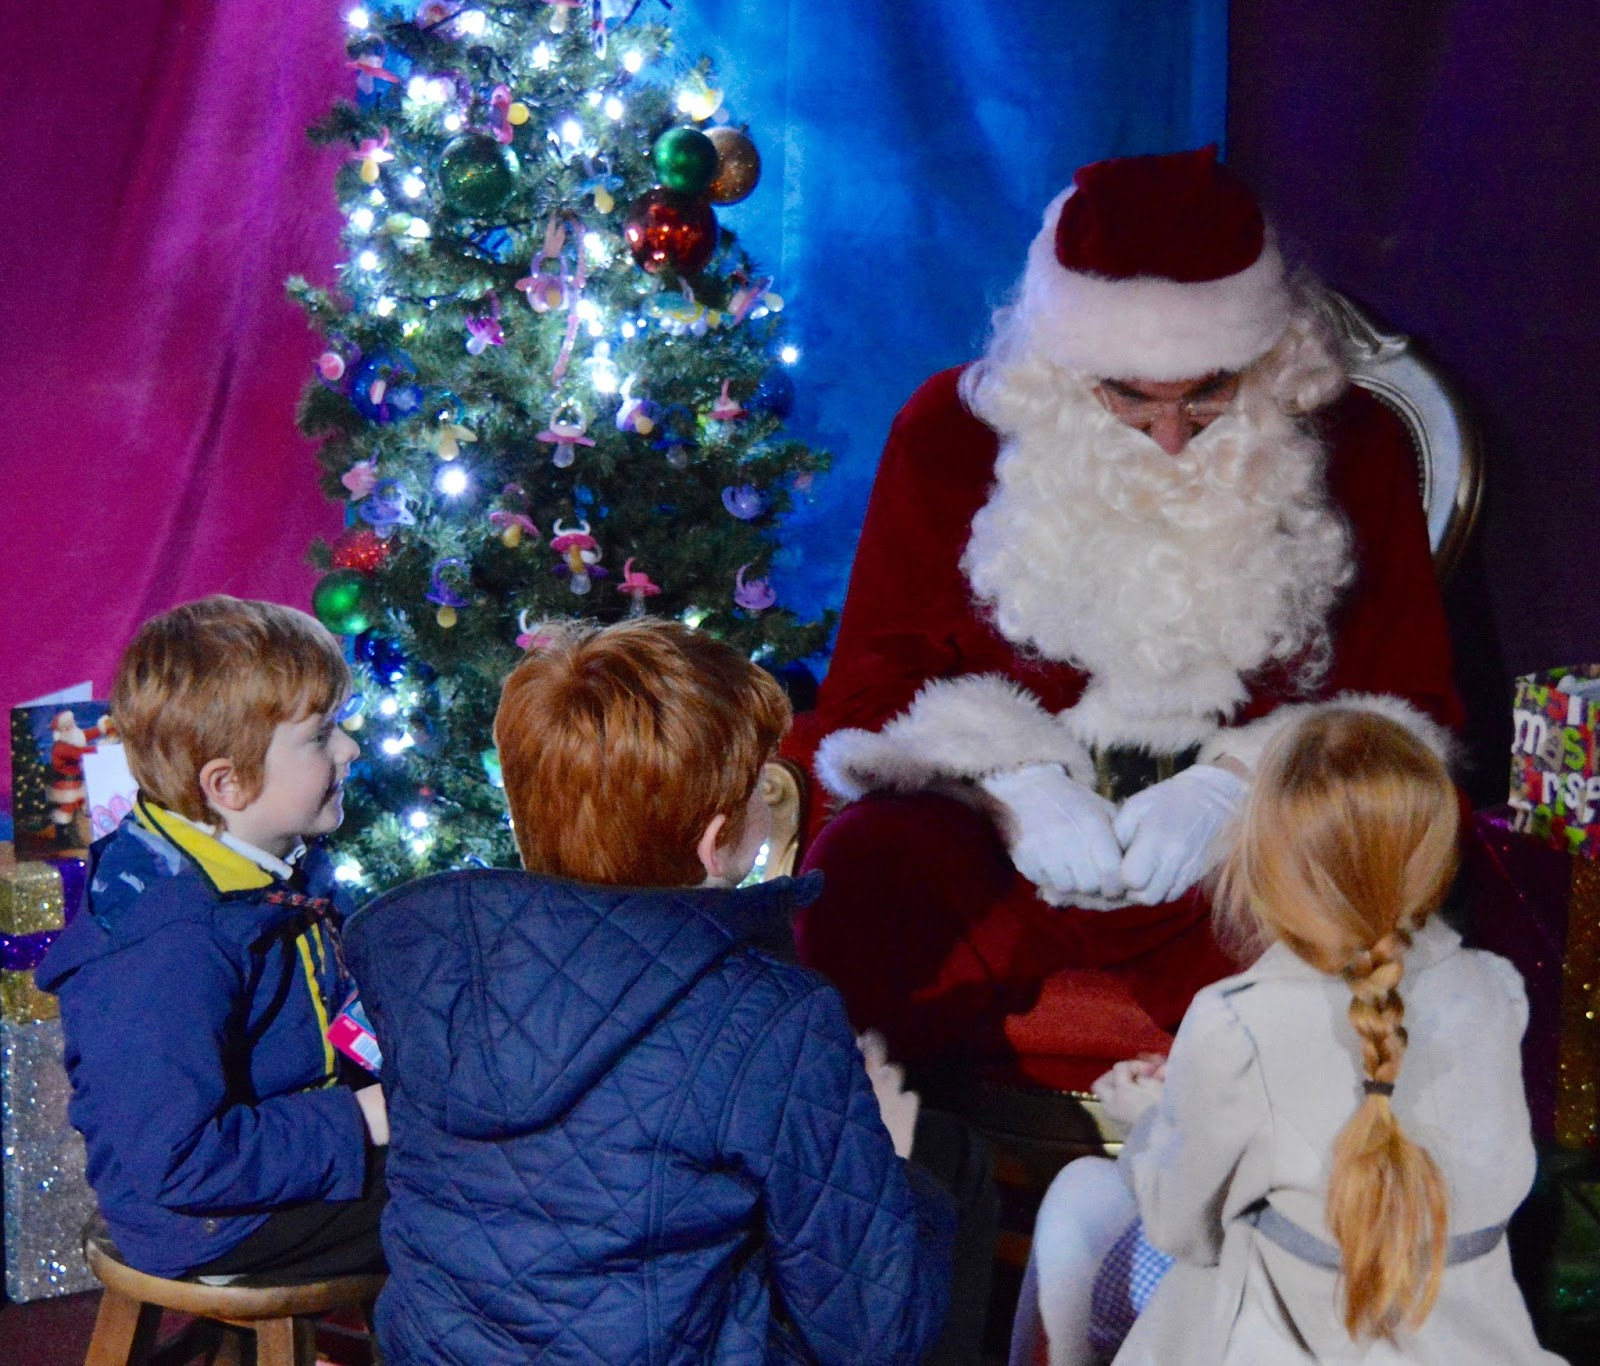 Visiting the FREE Santa's Grotto at intu Metocentre